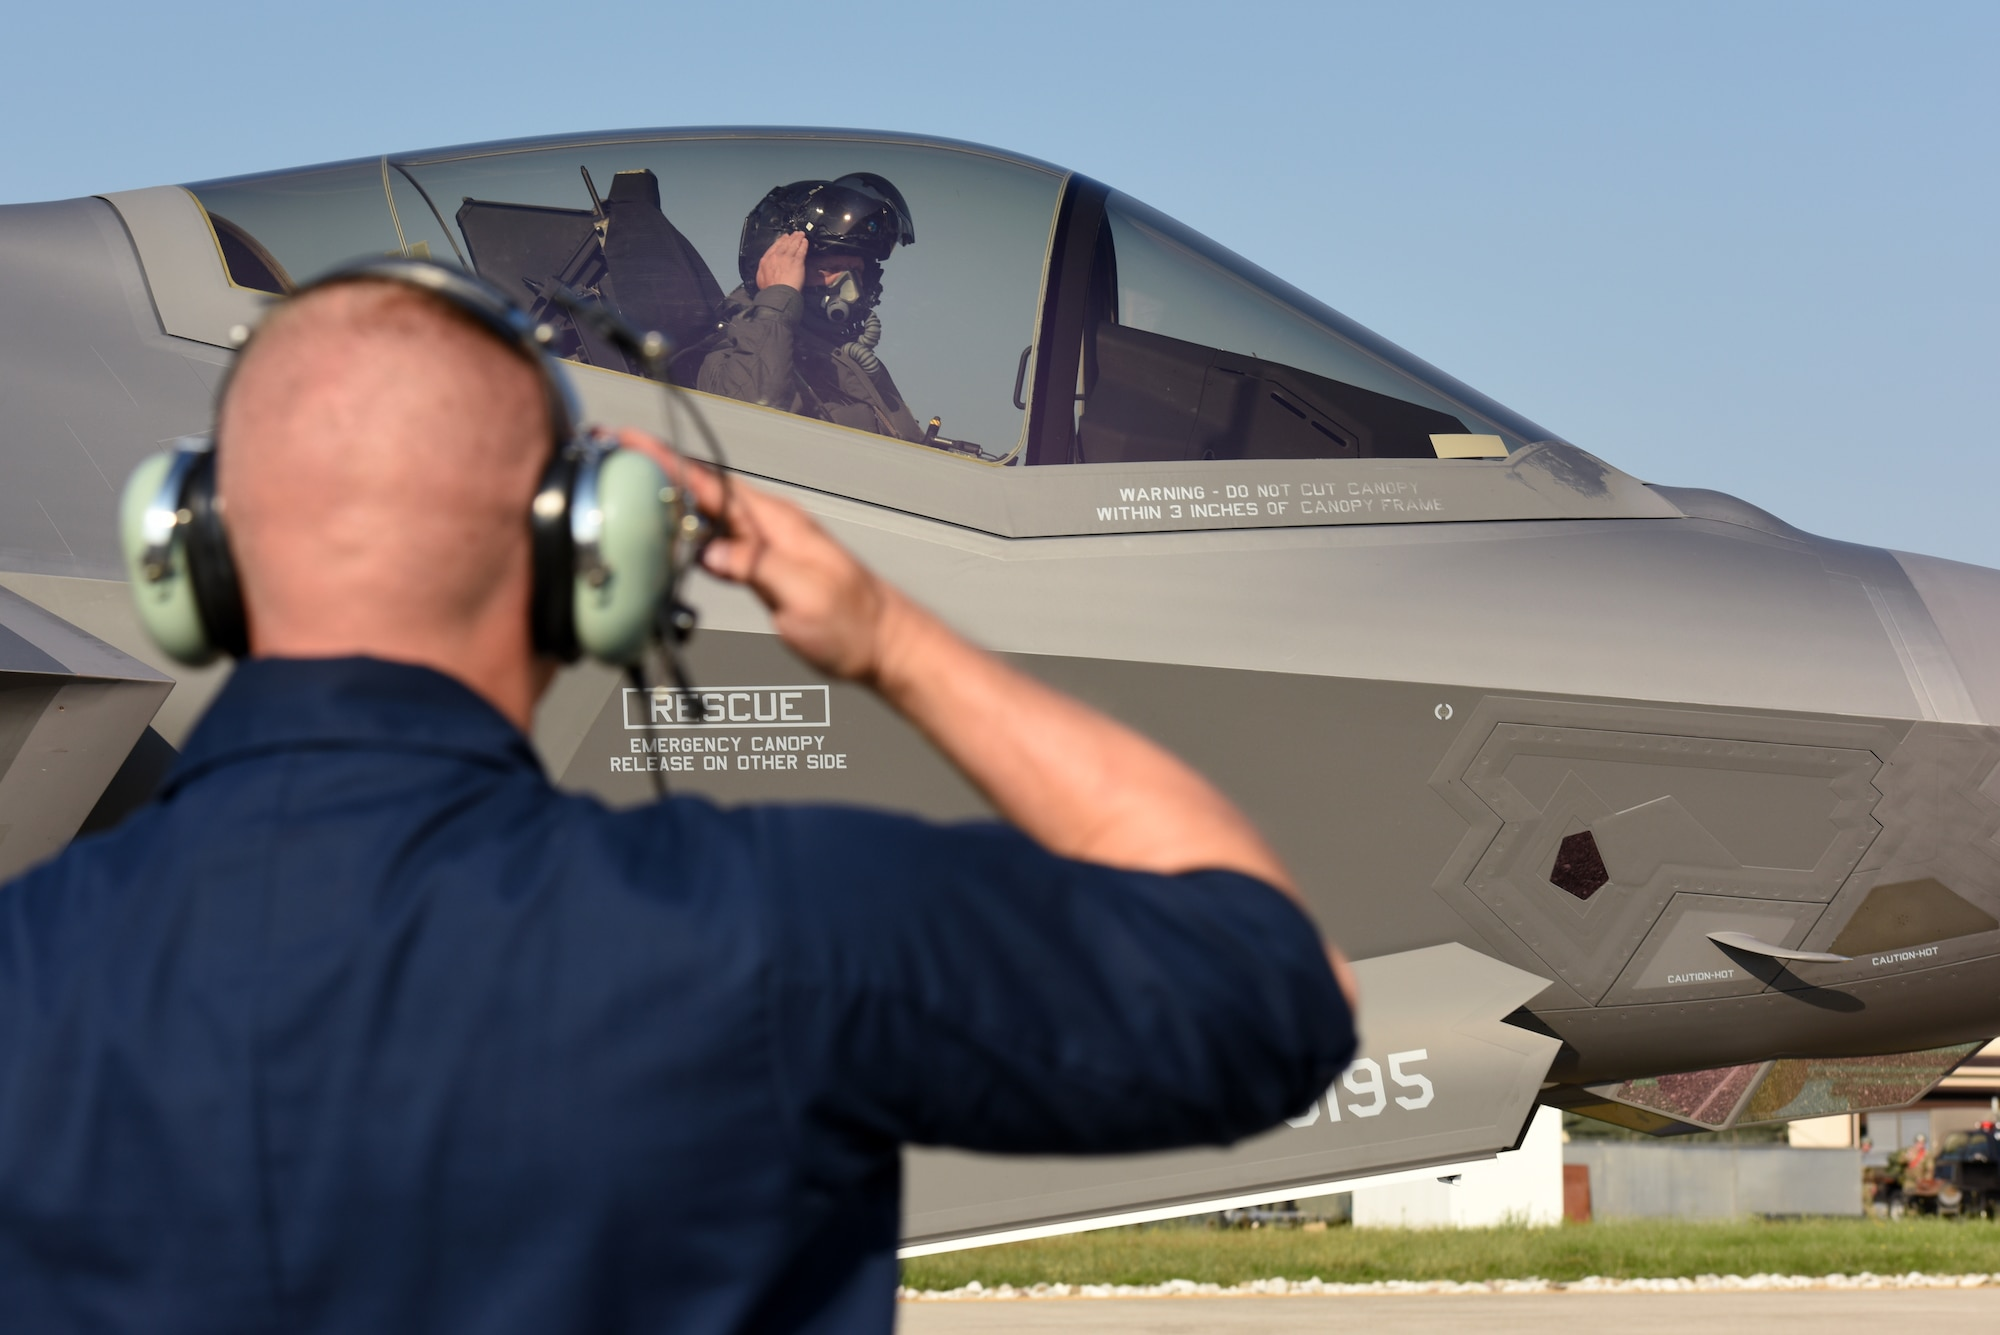 Senior Airman Christopher Kuhn, 421st Aircraft Maintenance Unit crew chief, salutes Lt. Col. Max Cover, 421st Fighter Squadron F-35A Lightning II fighter pilot, during Astral Knight 2019 on June 3, 2019, at Aviano Air Base, Italy. The F-35s are participating in Astral Knight 2019, a multinational integrated air and missile defense exercise that enhances relationships with allies and improves overall coordination with partner militaries during times of crisis. The Airmen are deployed from the active duty 388th and Reserve 419th Fighter Wings at Hill Air Force Base, Utah. (U.S. Air Force photo by Tech. Sgt. Jim Araos)